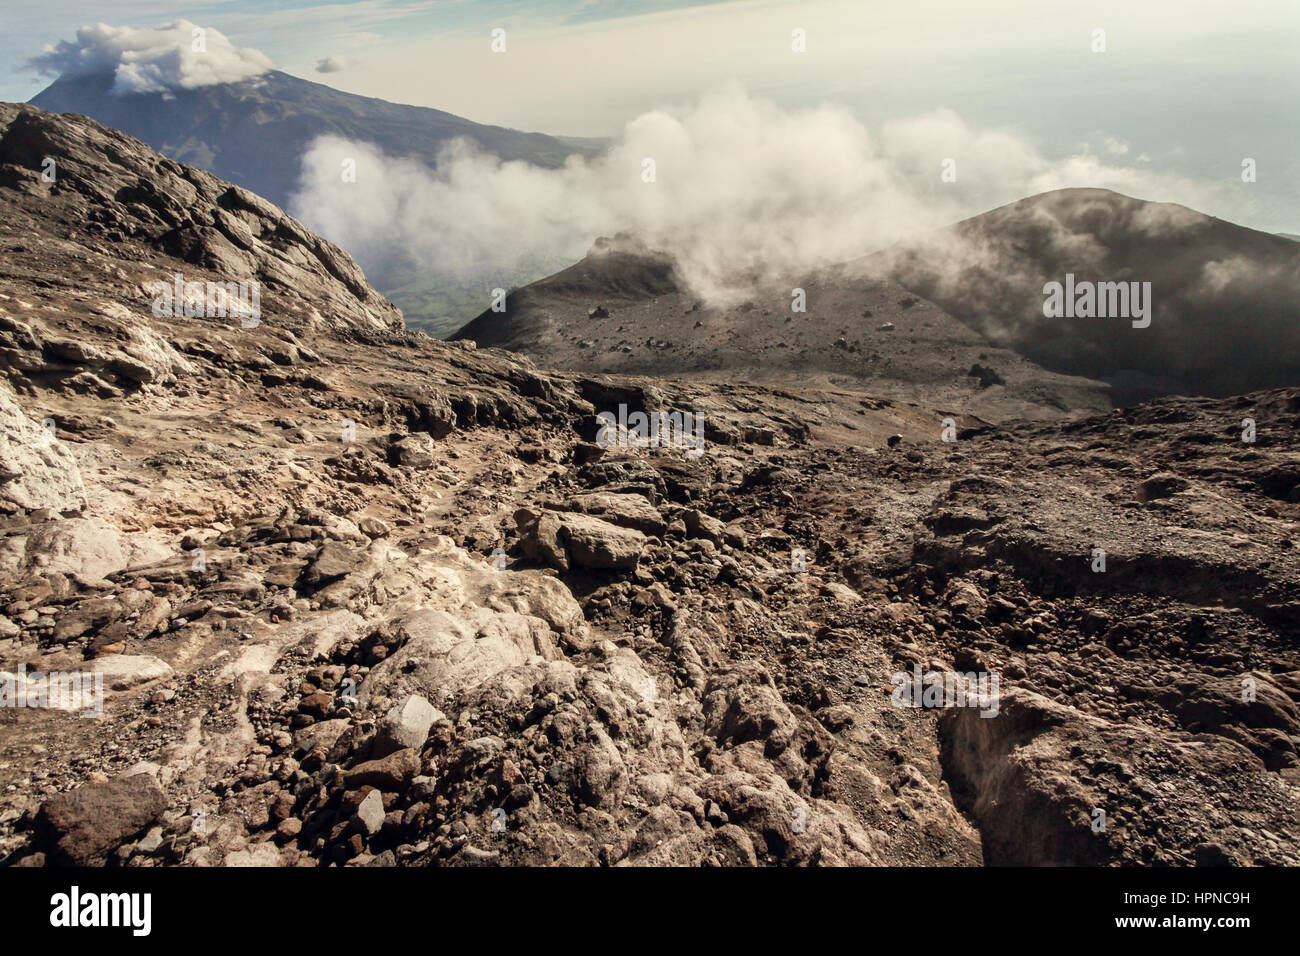 Looking down from Mount Merapi Active Volcano Crater over some treacherous volcanic rock a dangerous mountain landscape. - Stock Image